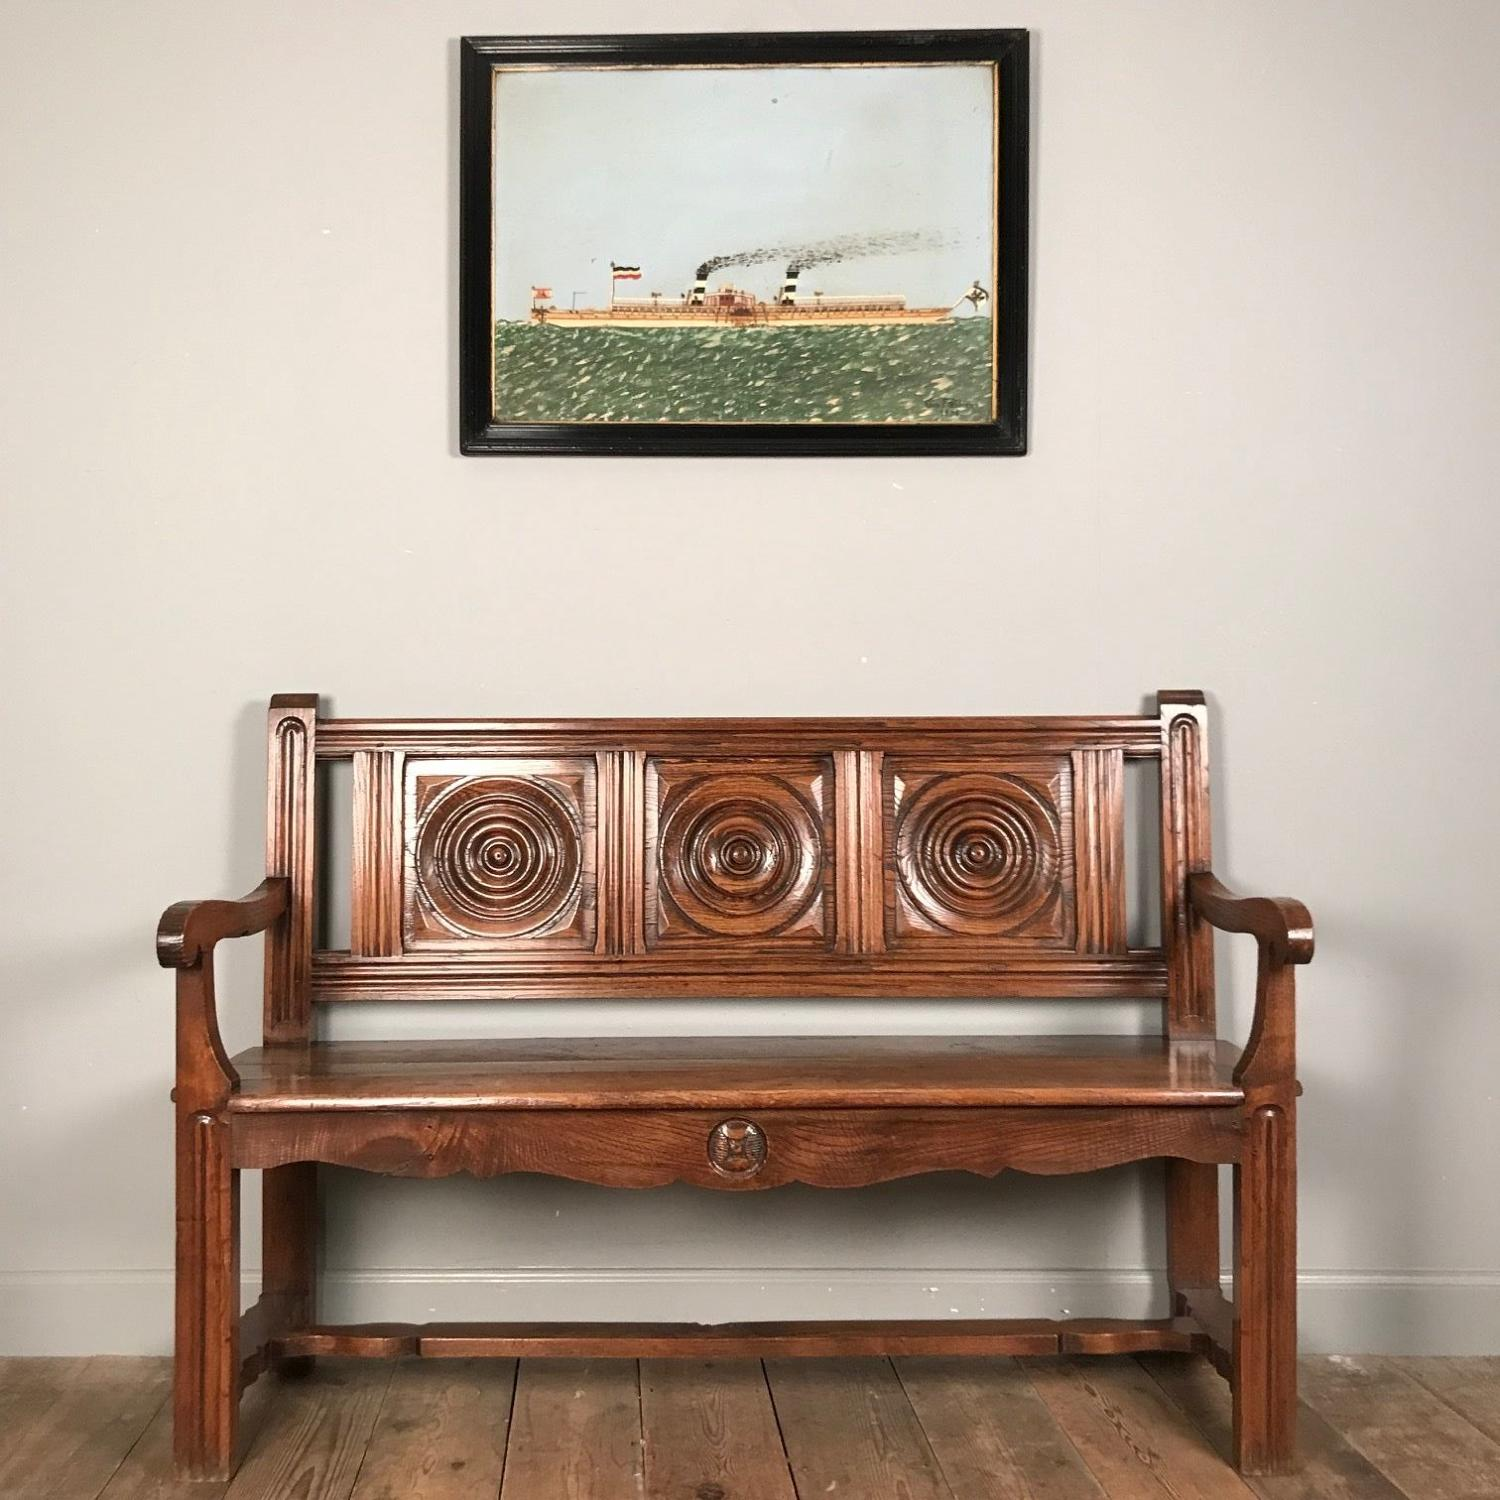 Lovely 19th Century Chestnut Bench